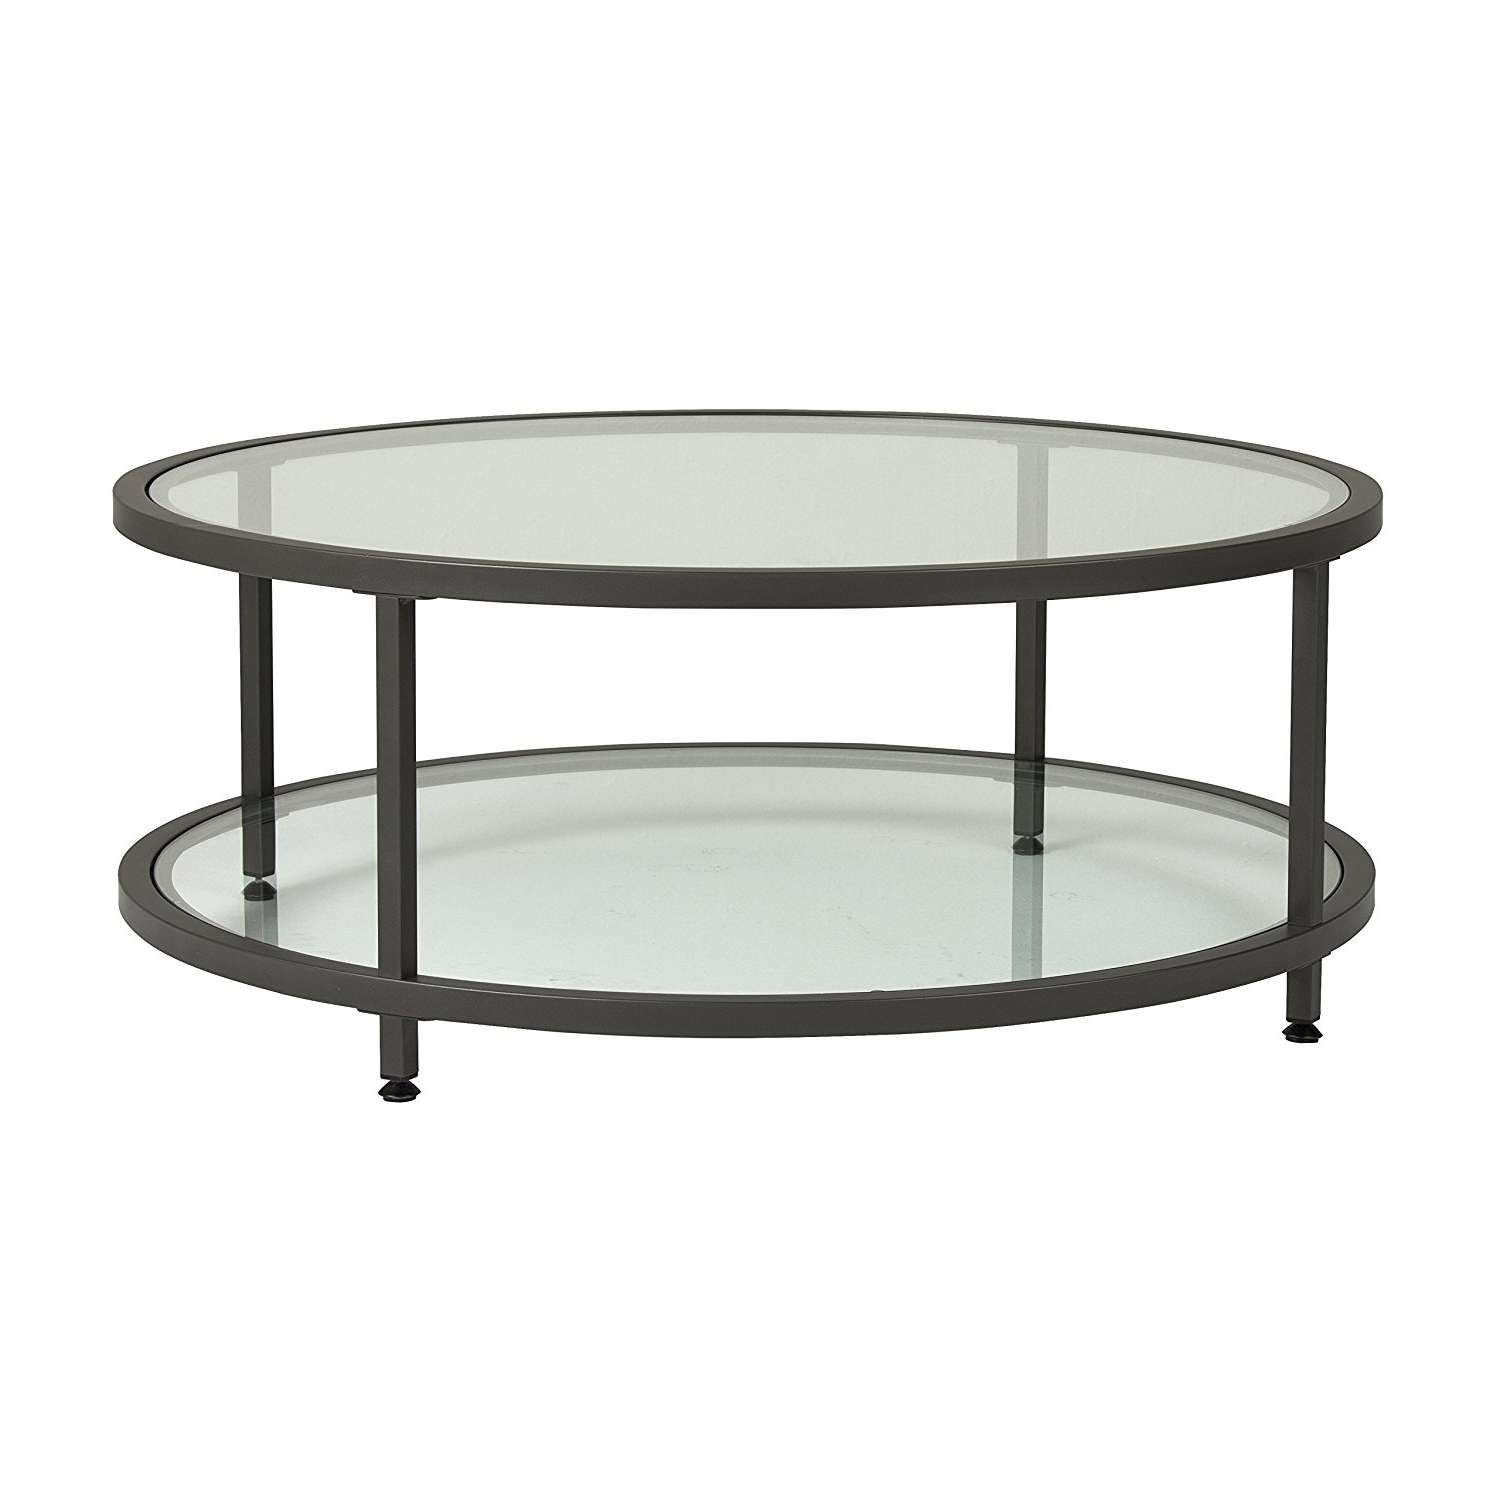 Best And Newest Circular Glass Coffee Tables Throughout Coffee Table : Marvelous Natural Wood Coffee Table Glass Coffee (View 10 of 20)